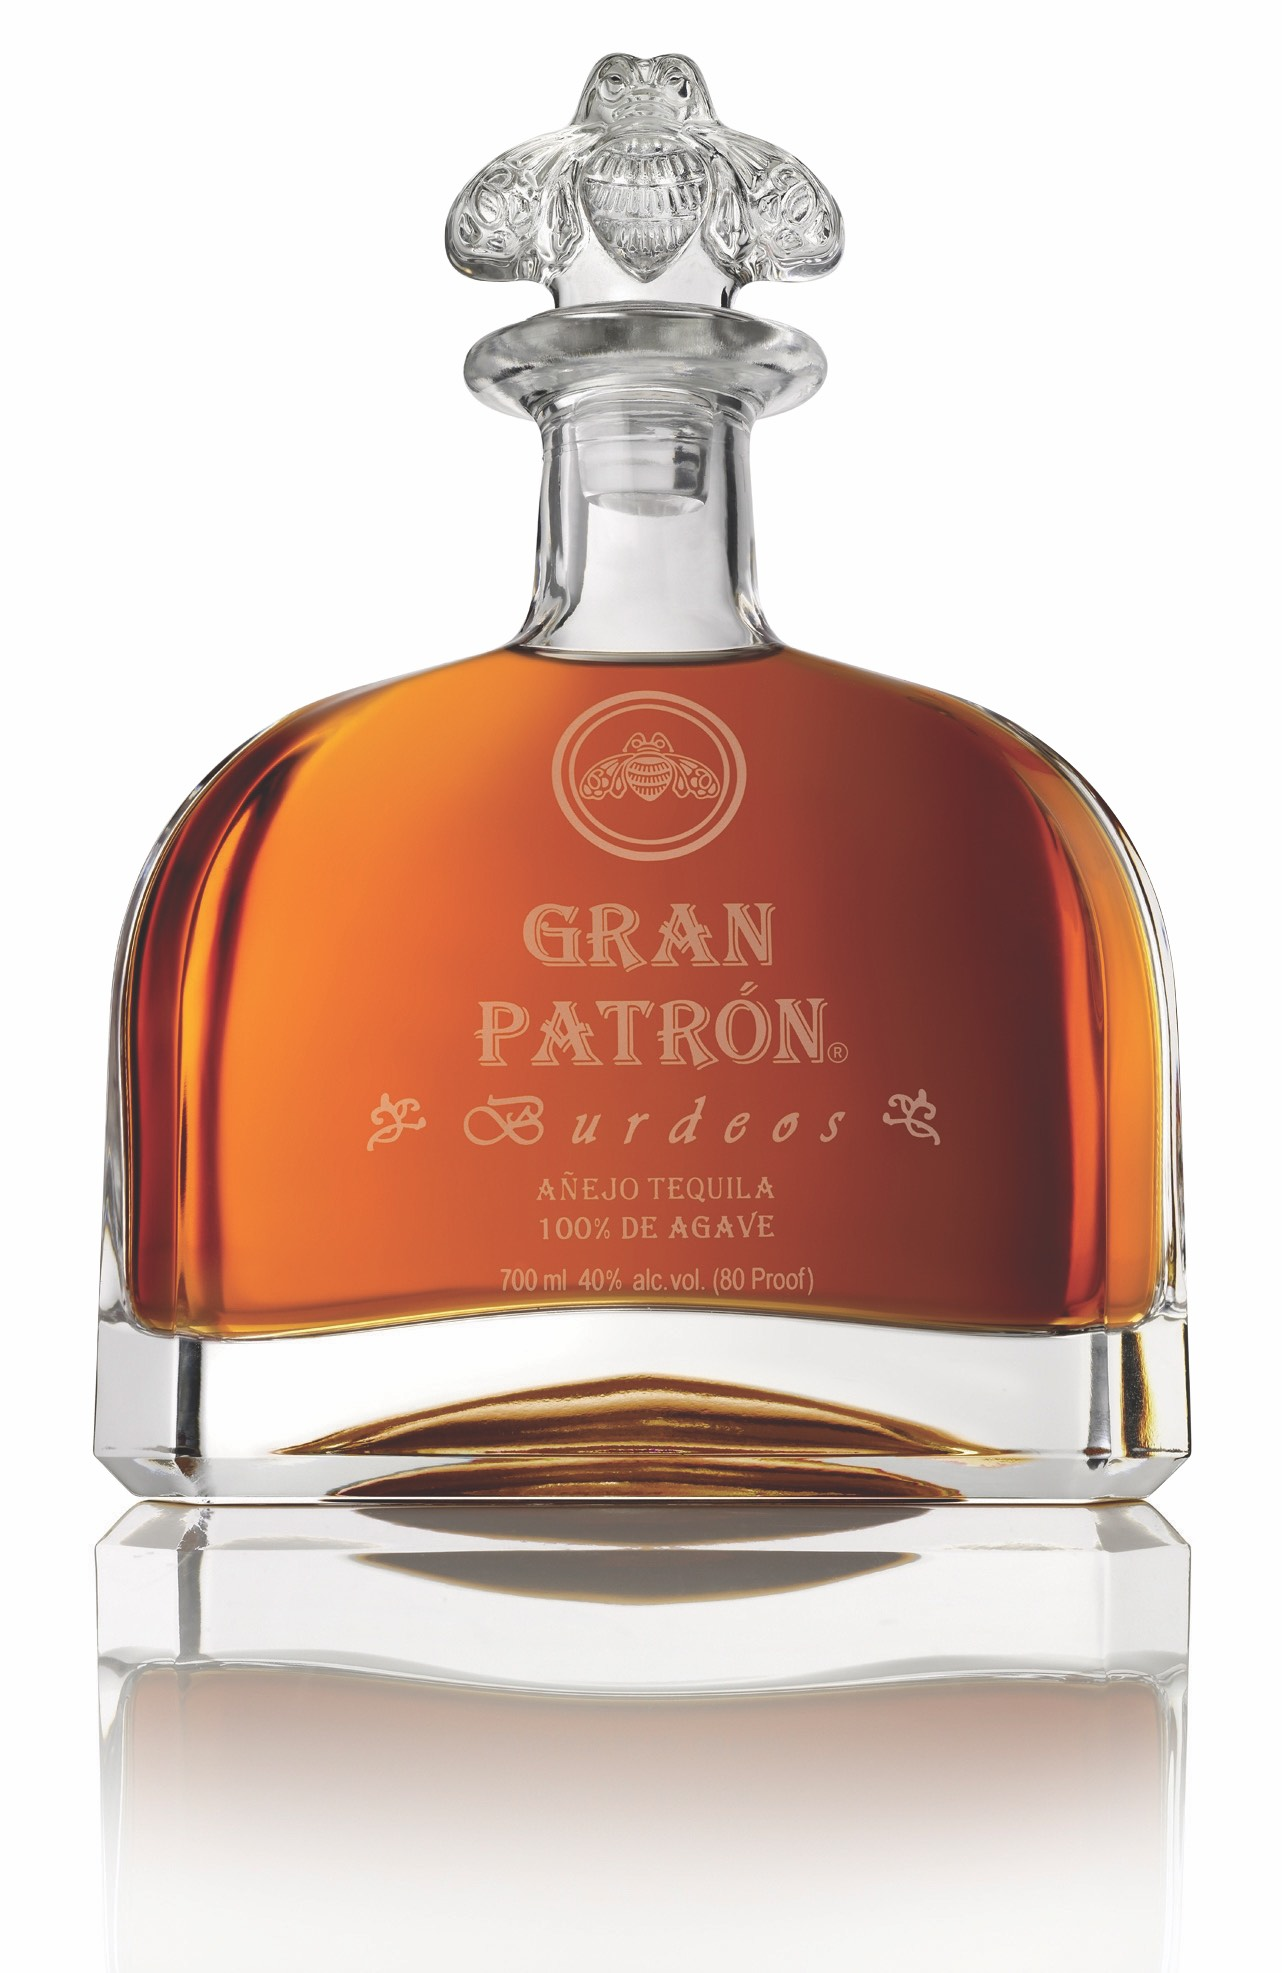 Gran Patrón Burdeos High Res[1][3]